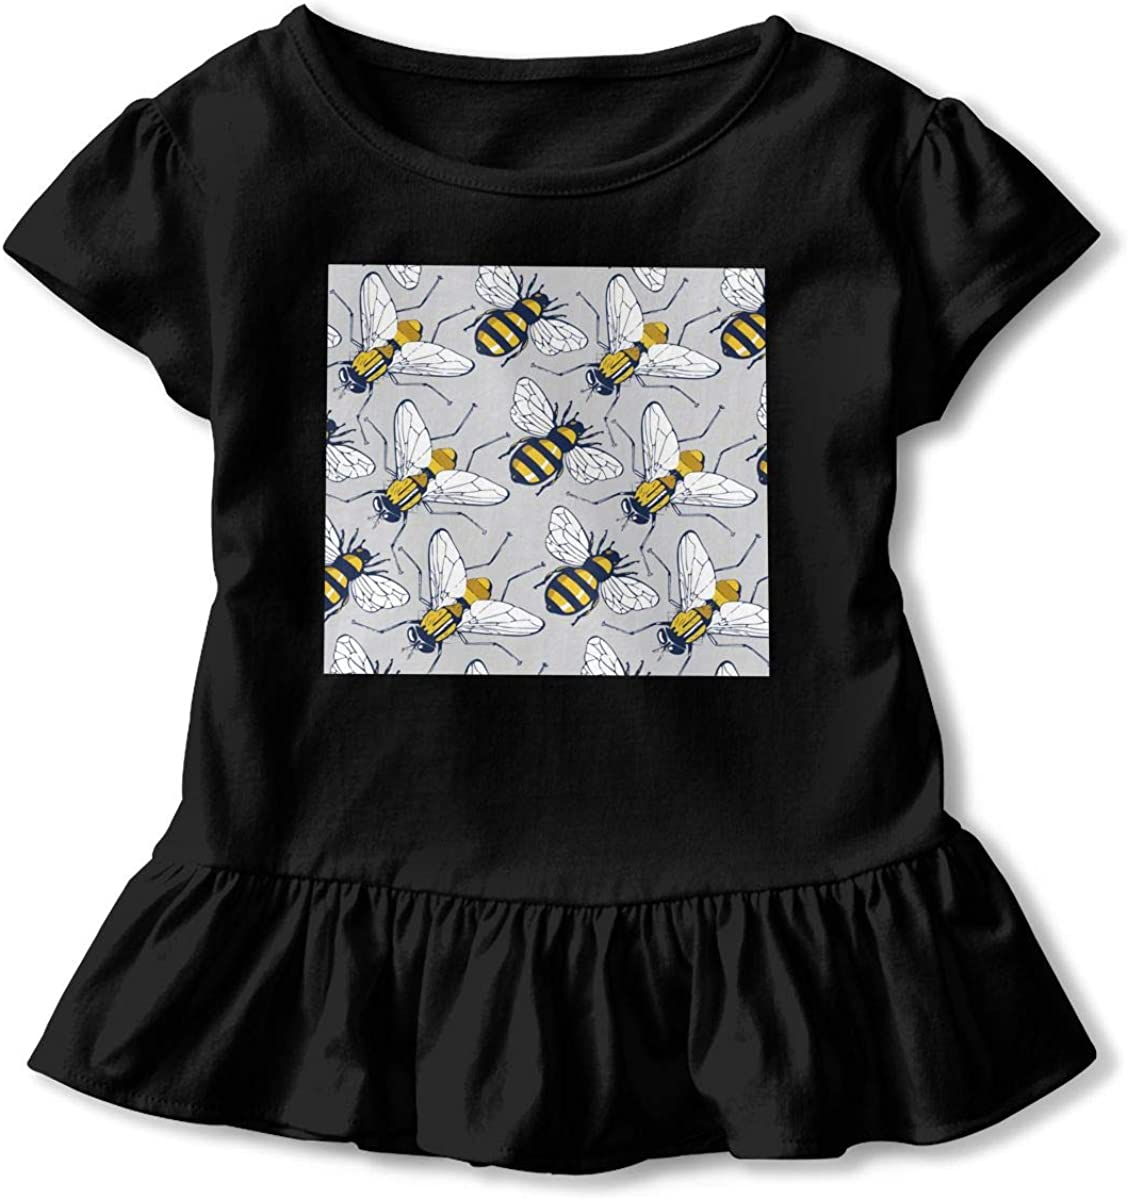 Not Available Bees Pattern Baby Girls Short Sleeve T-Shirt Flounced Graphic Outfits for 2-6 Years Old Baby